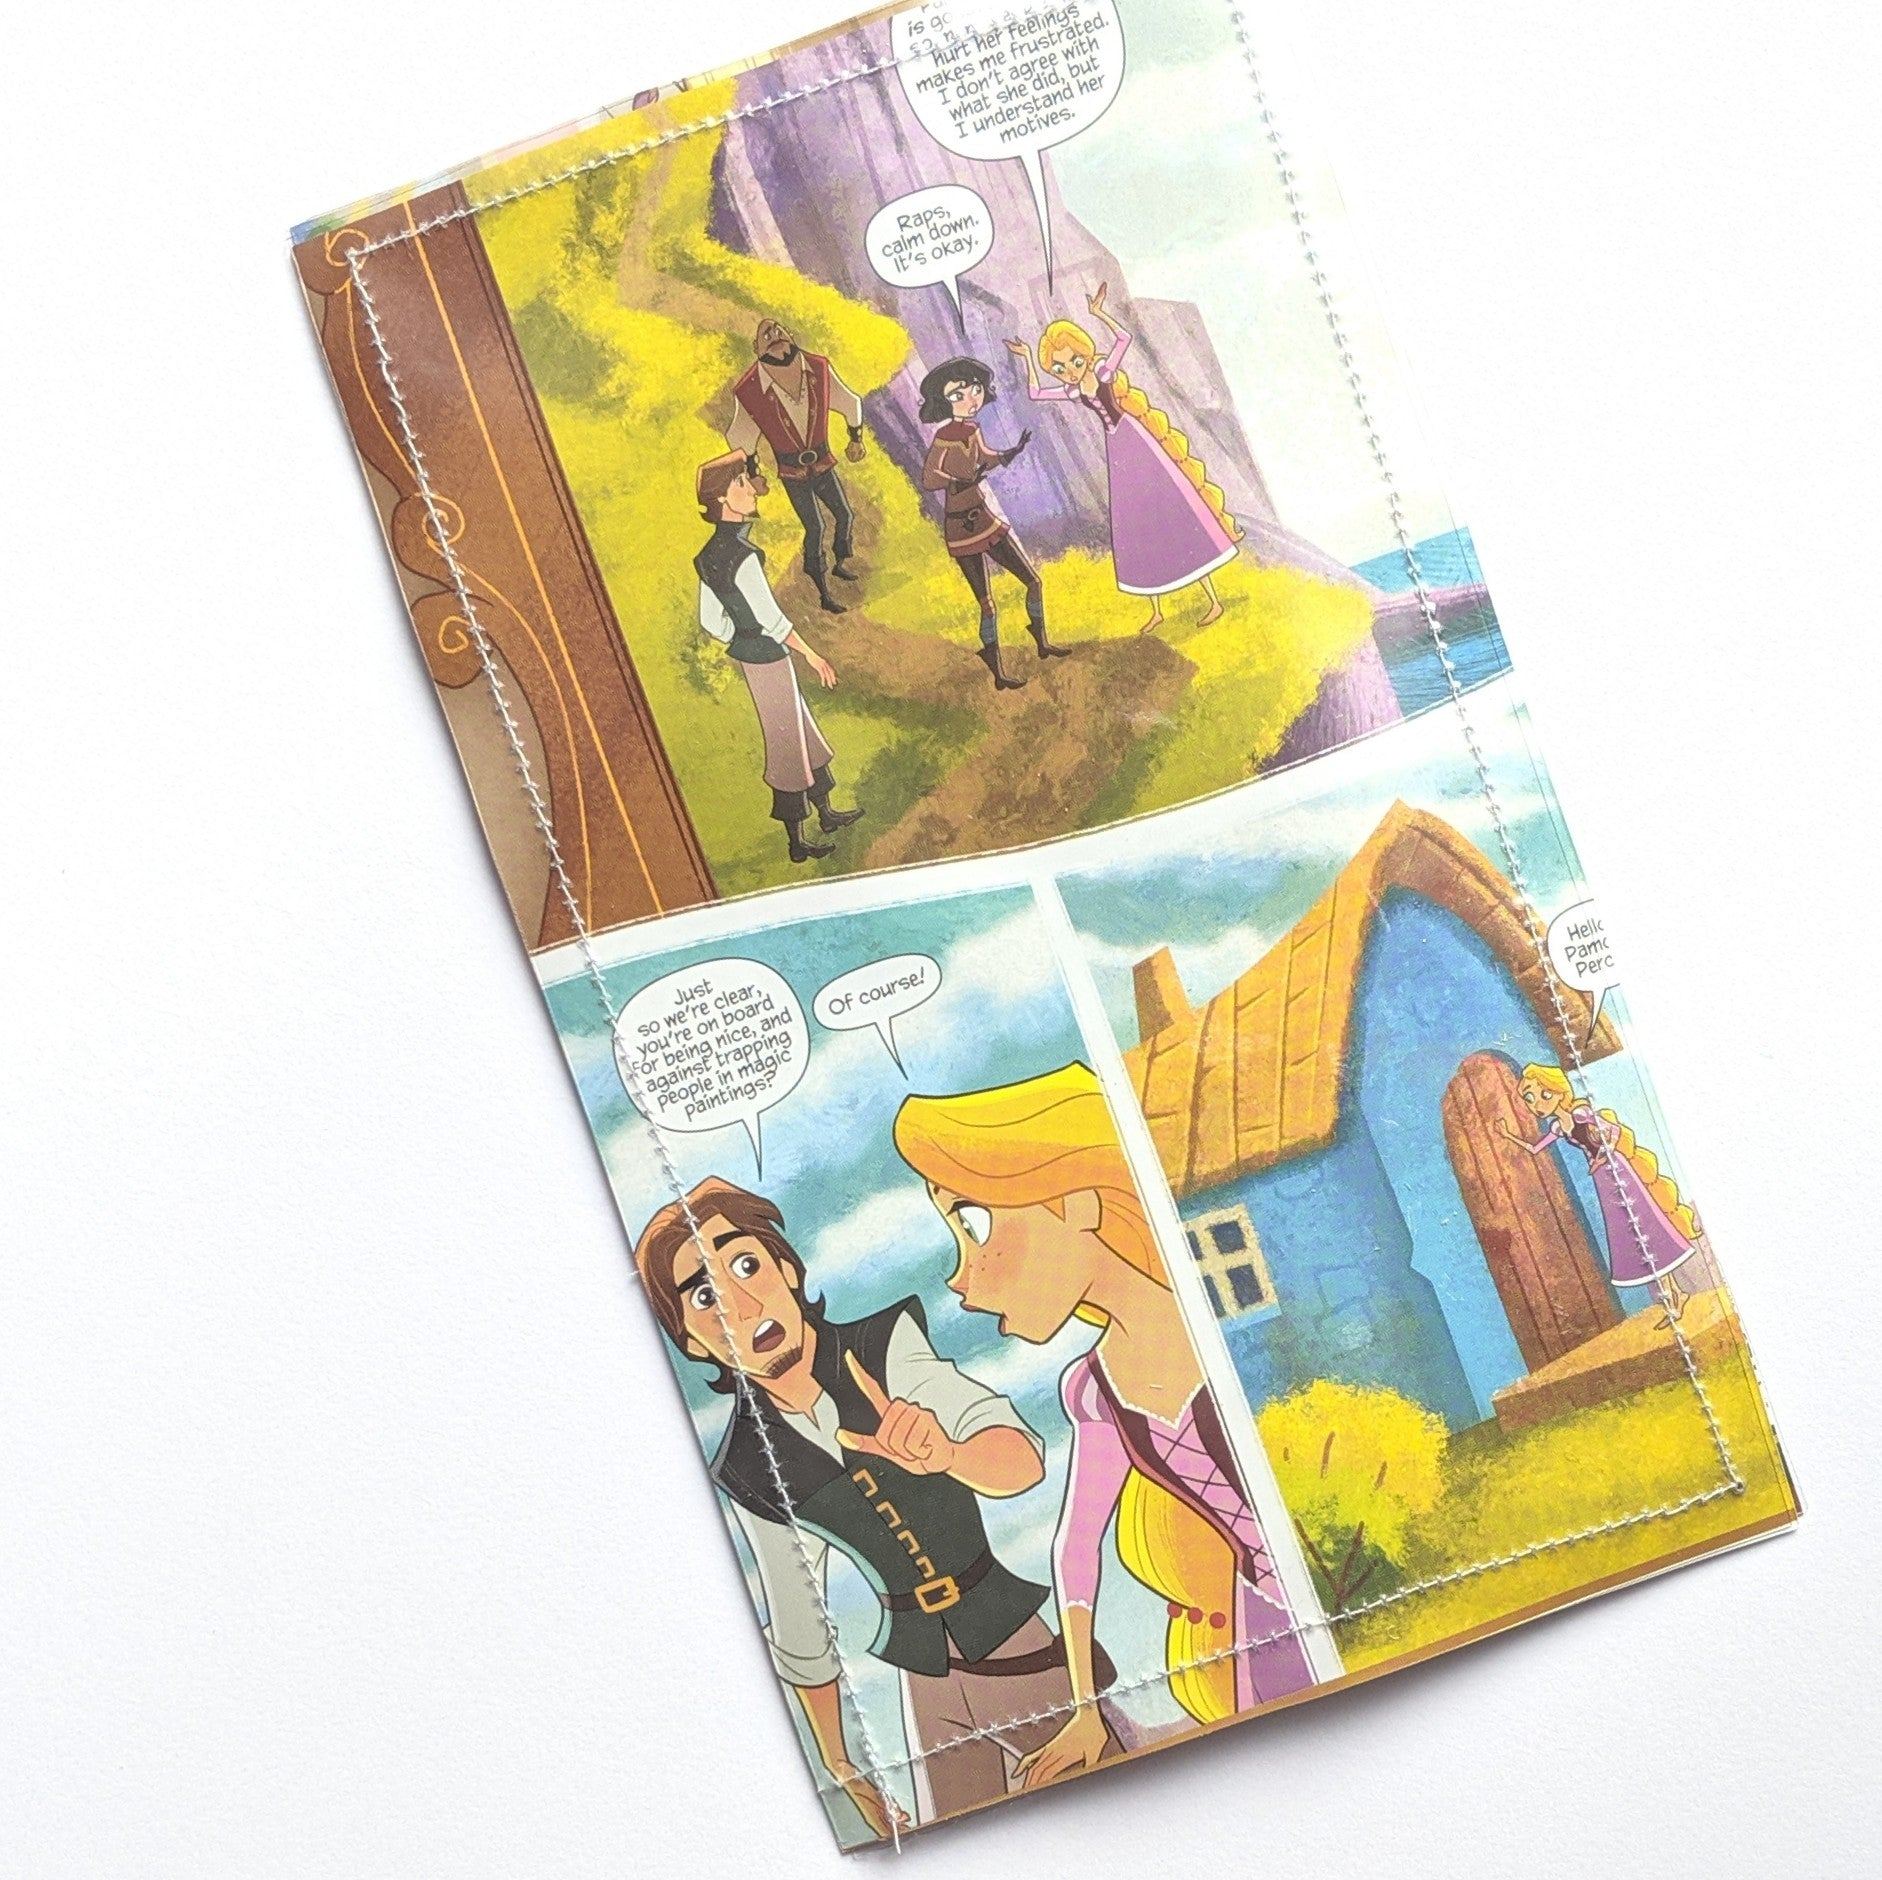 Tangled Rapunzel - Upcycled Comic Book Vinyl Wallet